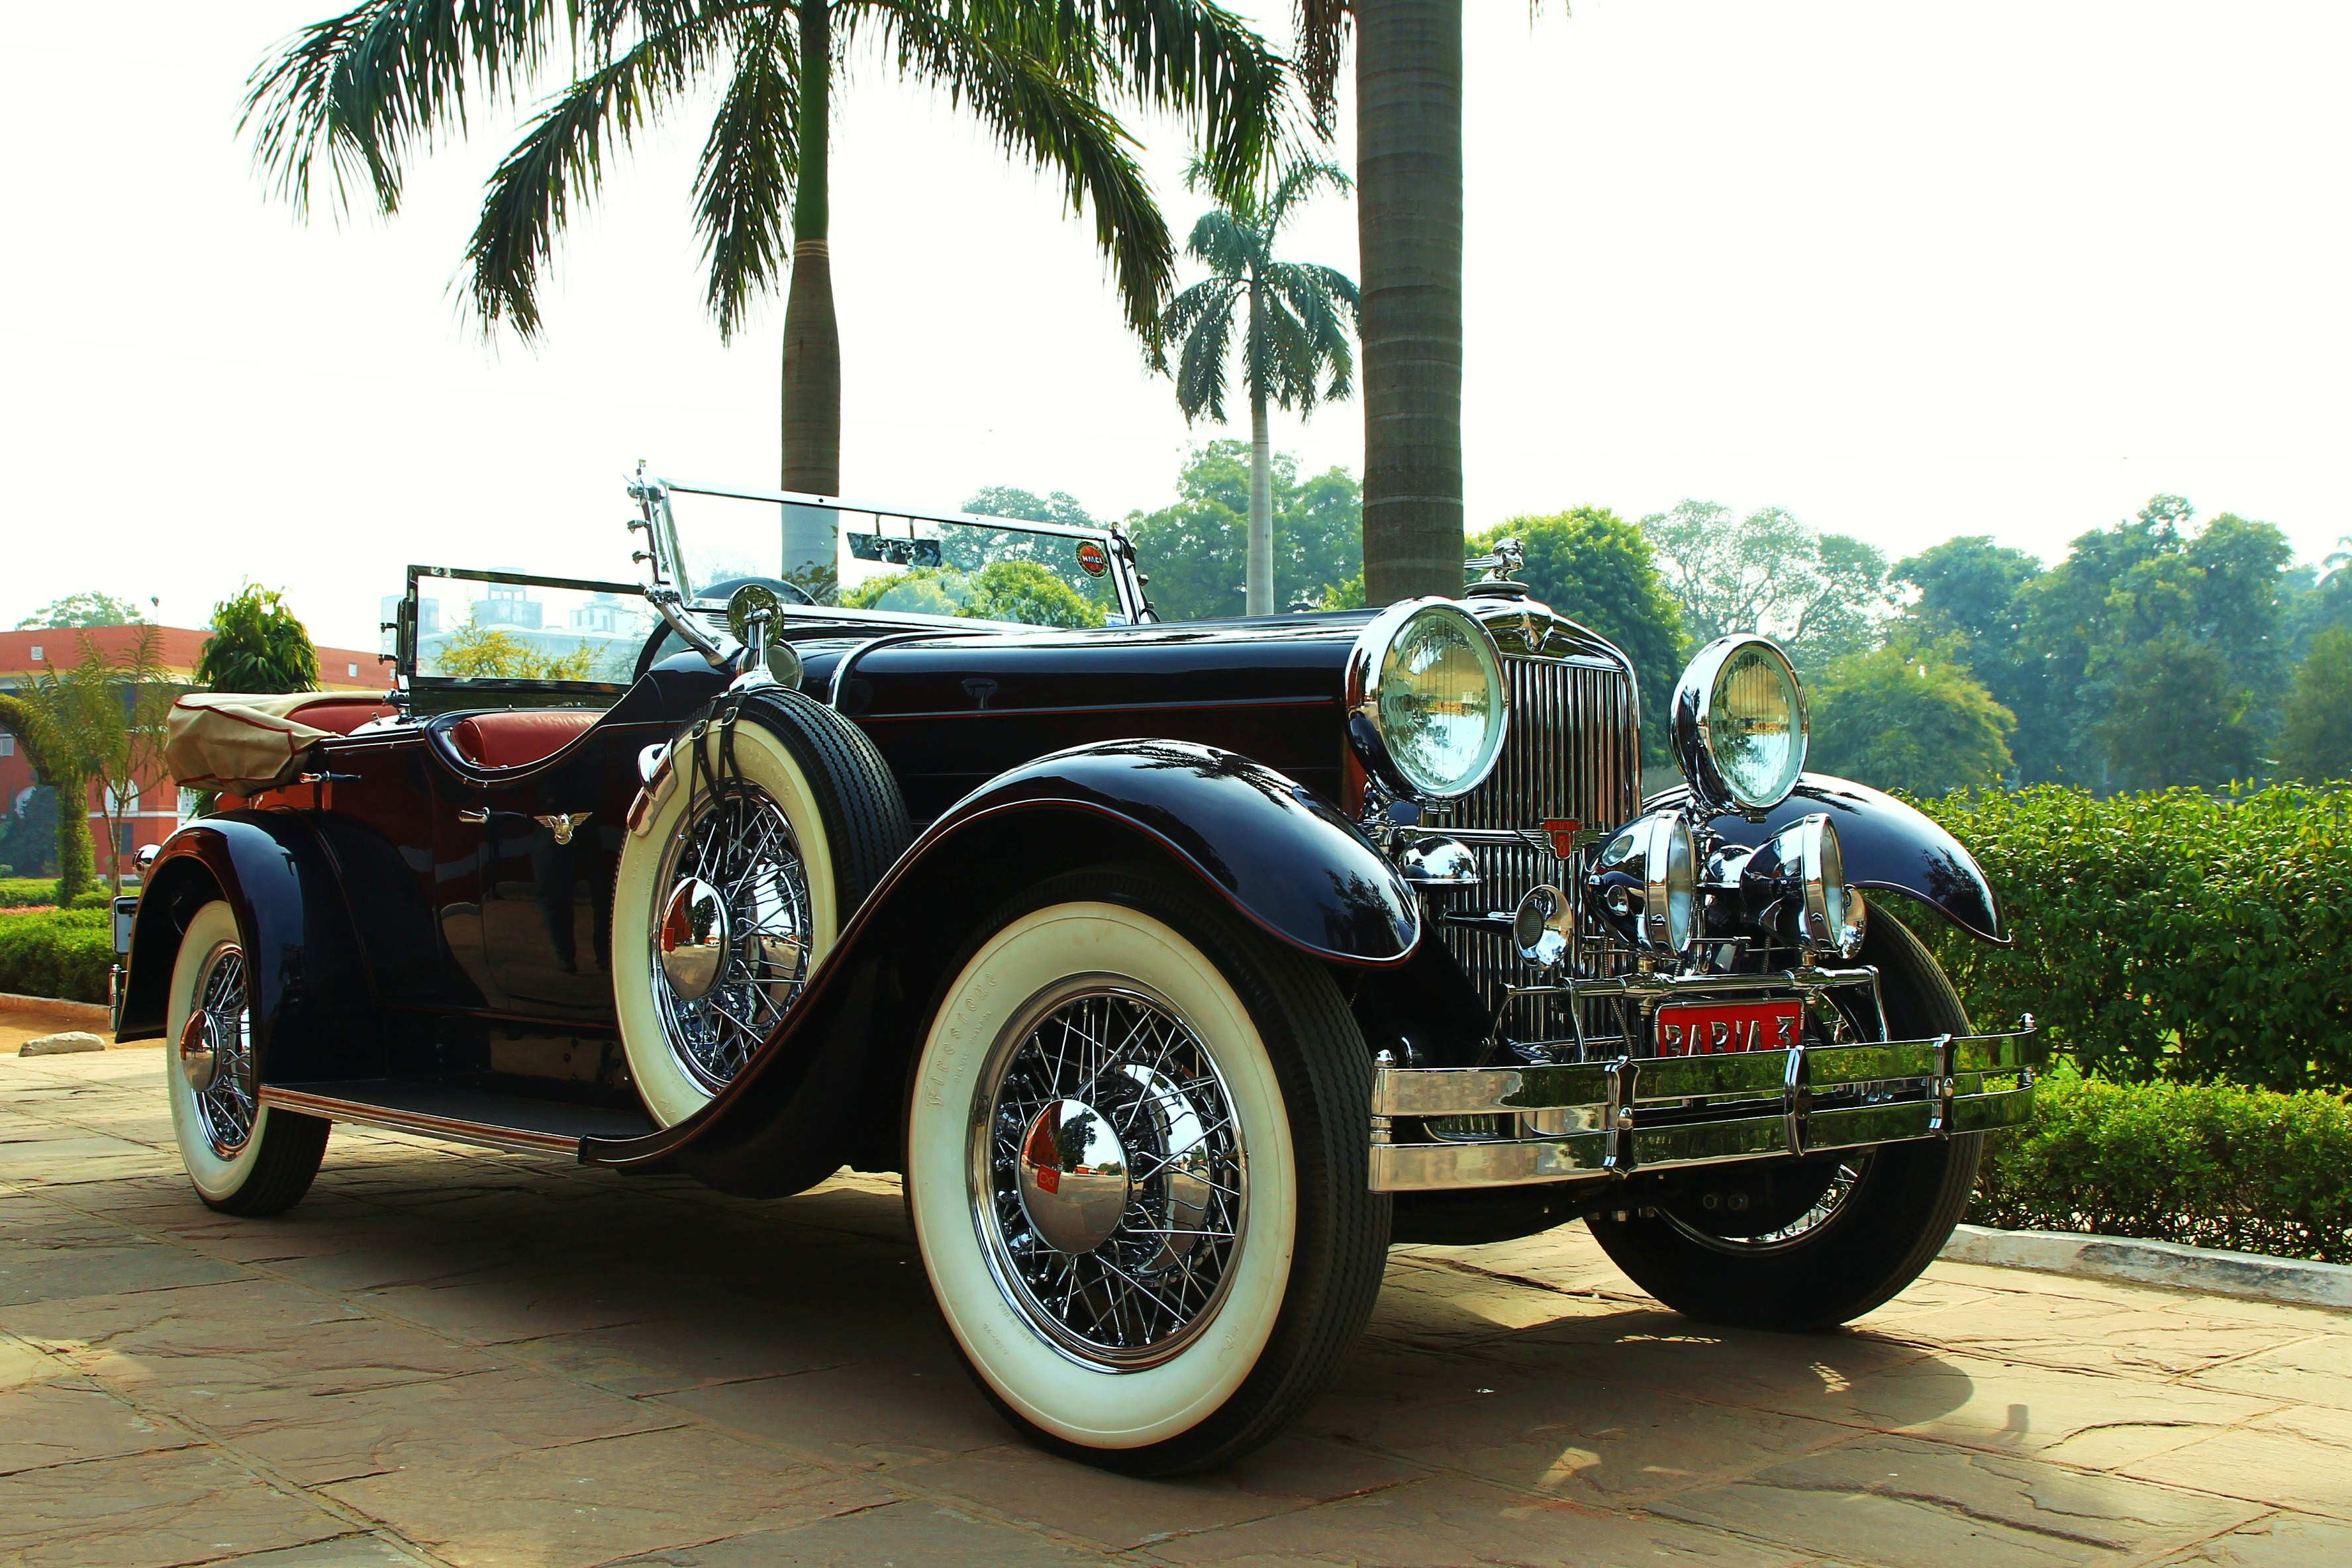 Auto Expo An Indian Lawyer S Incredible Collection Of Vintage Cars